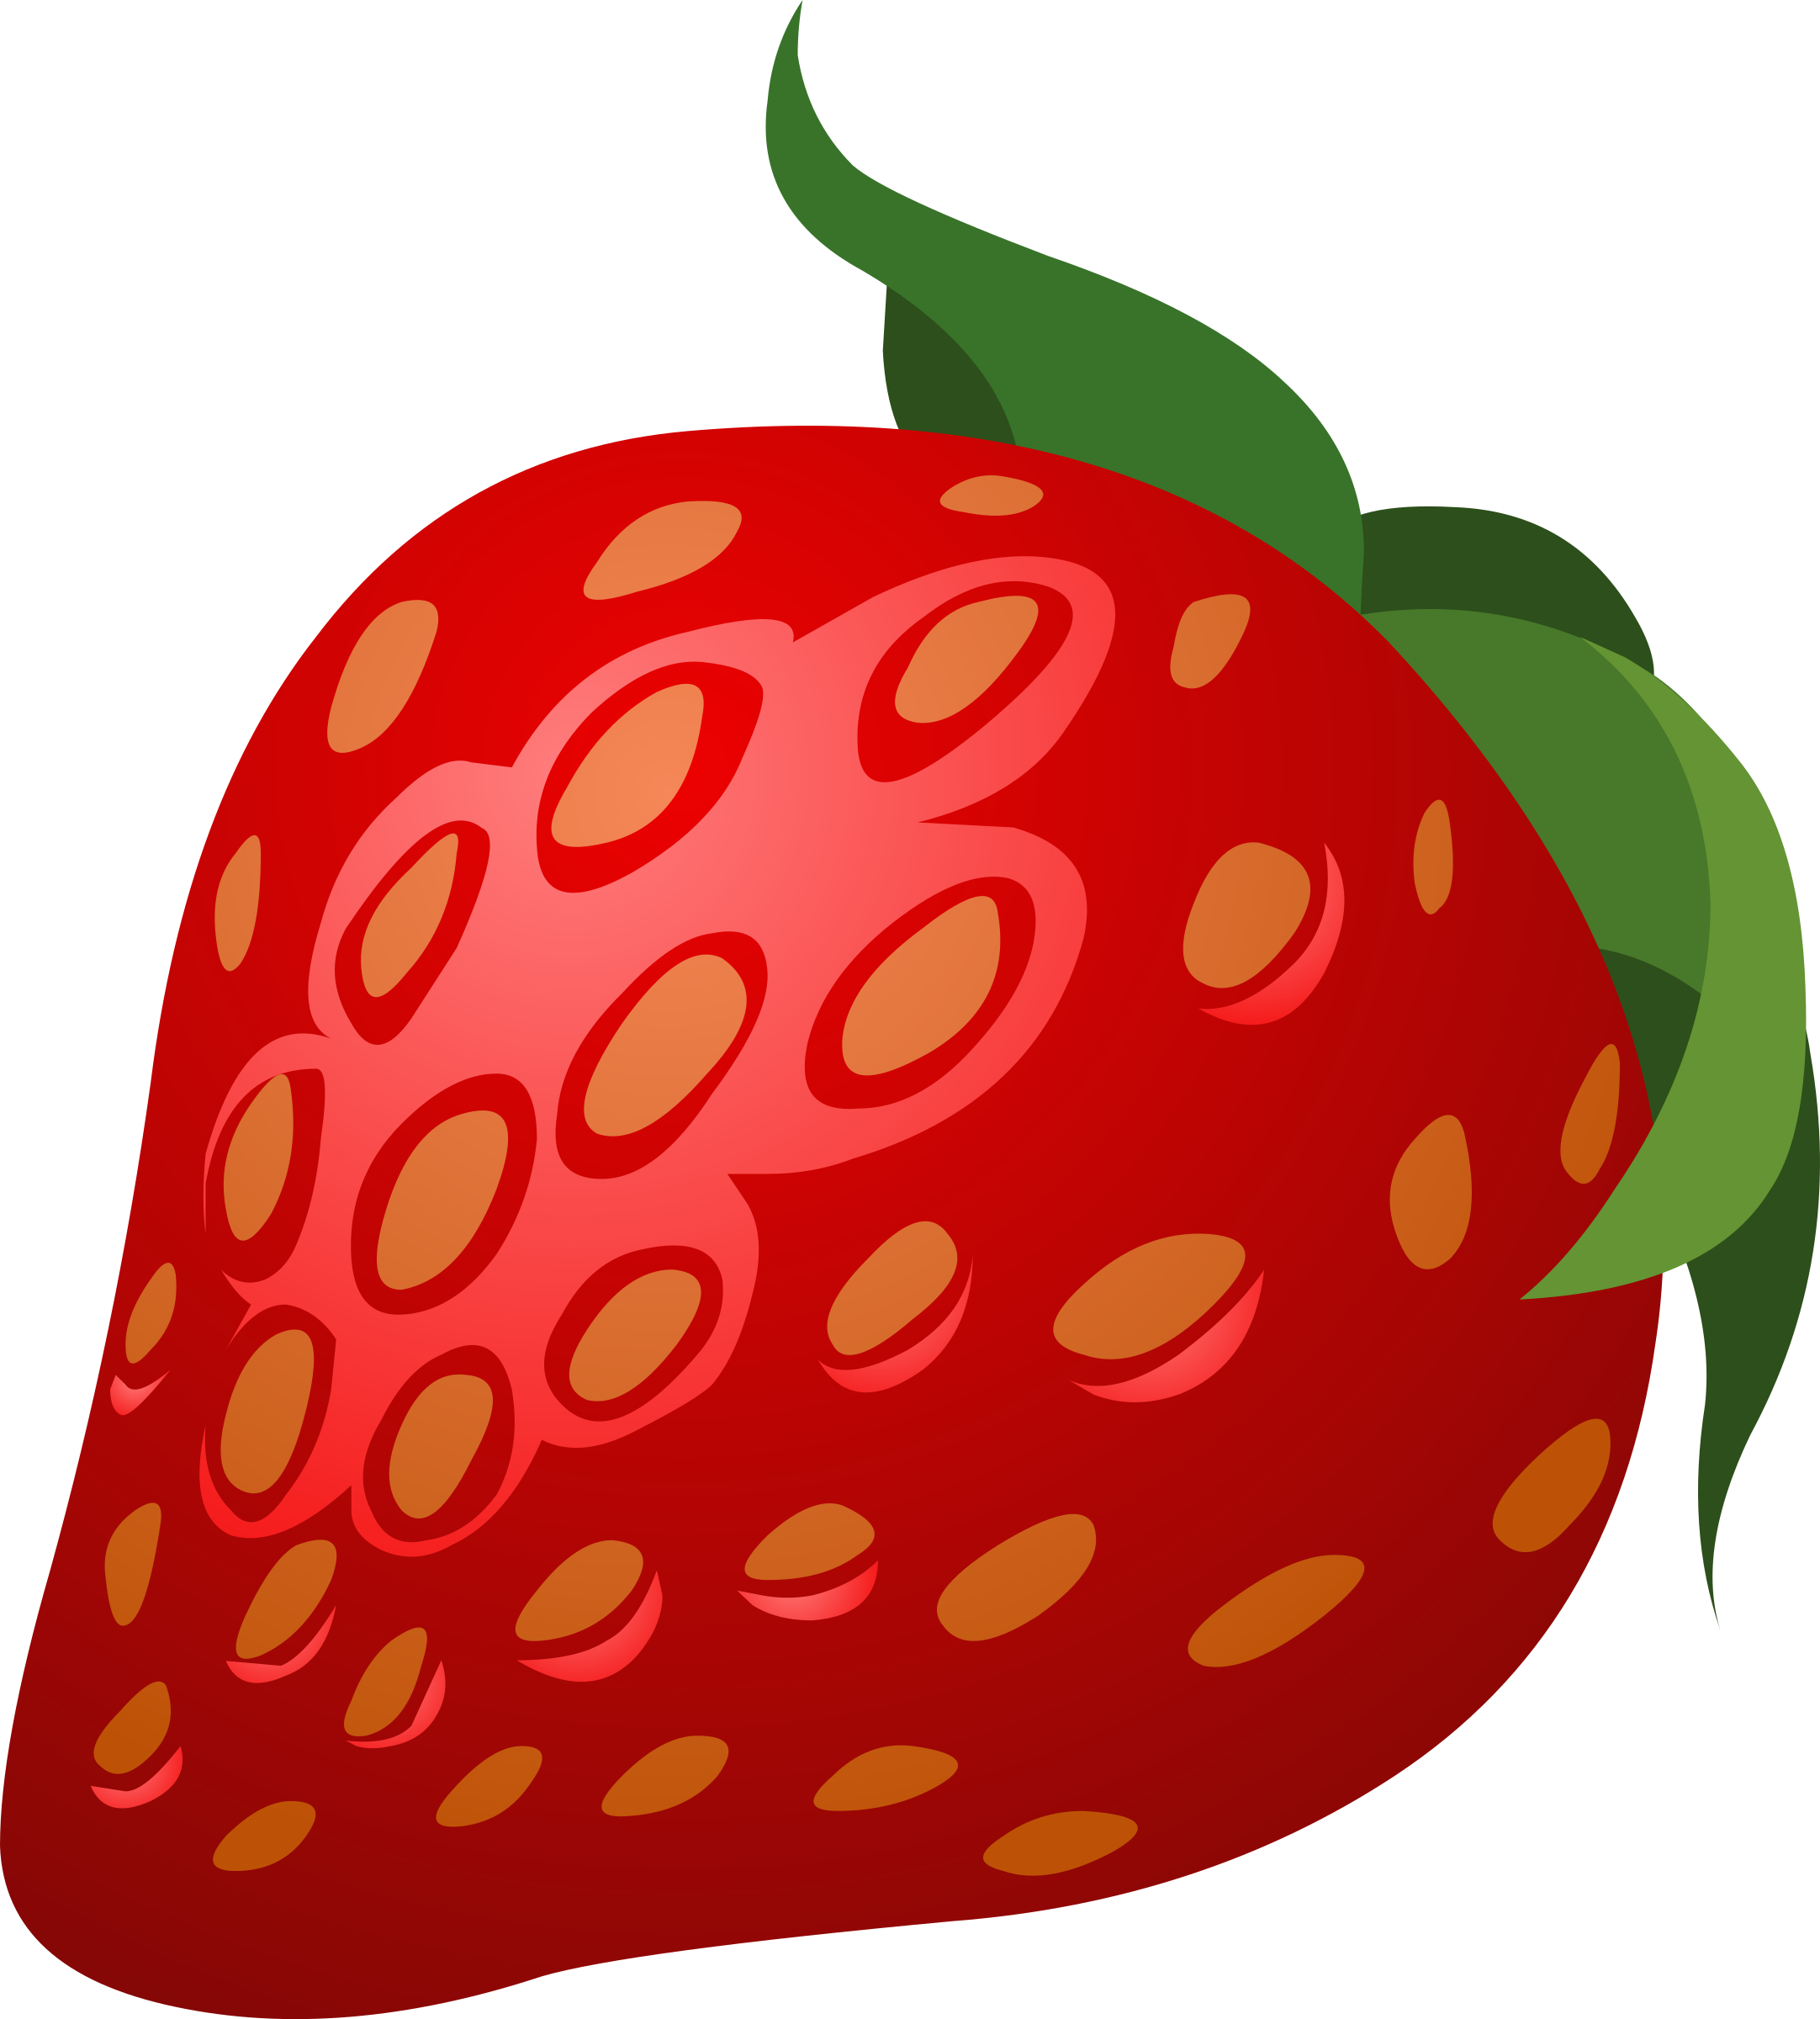 Clipart png strawberry. Food big image